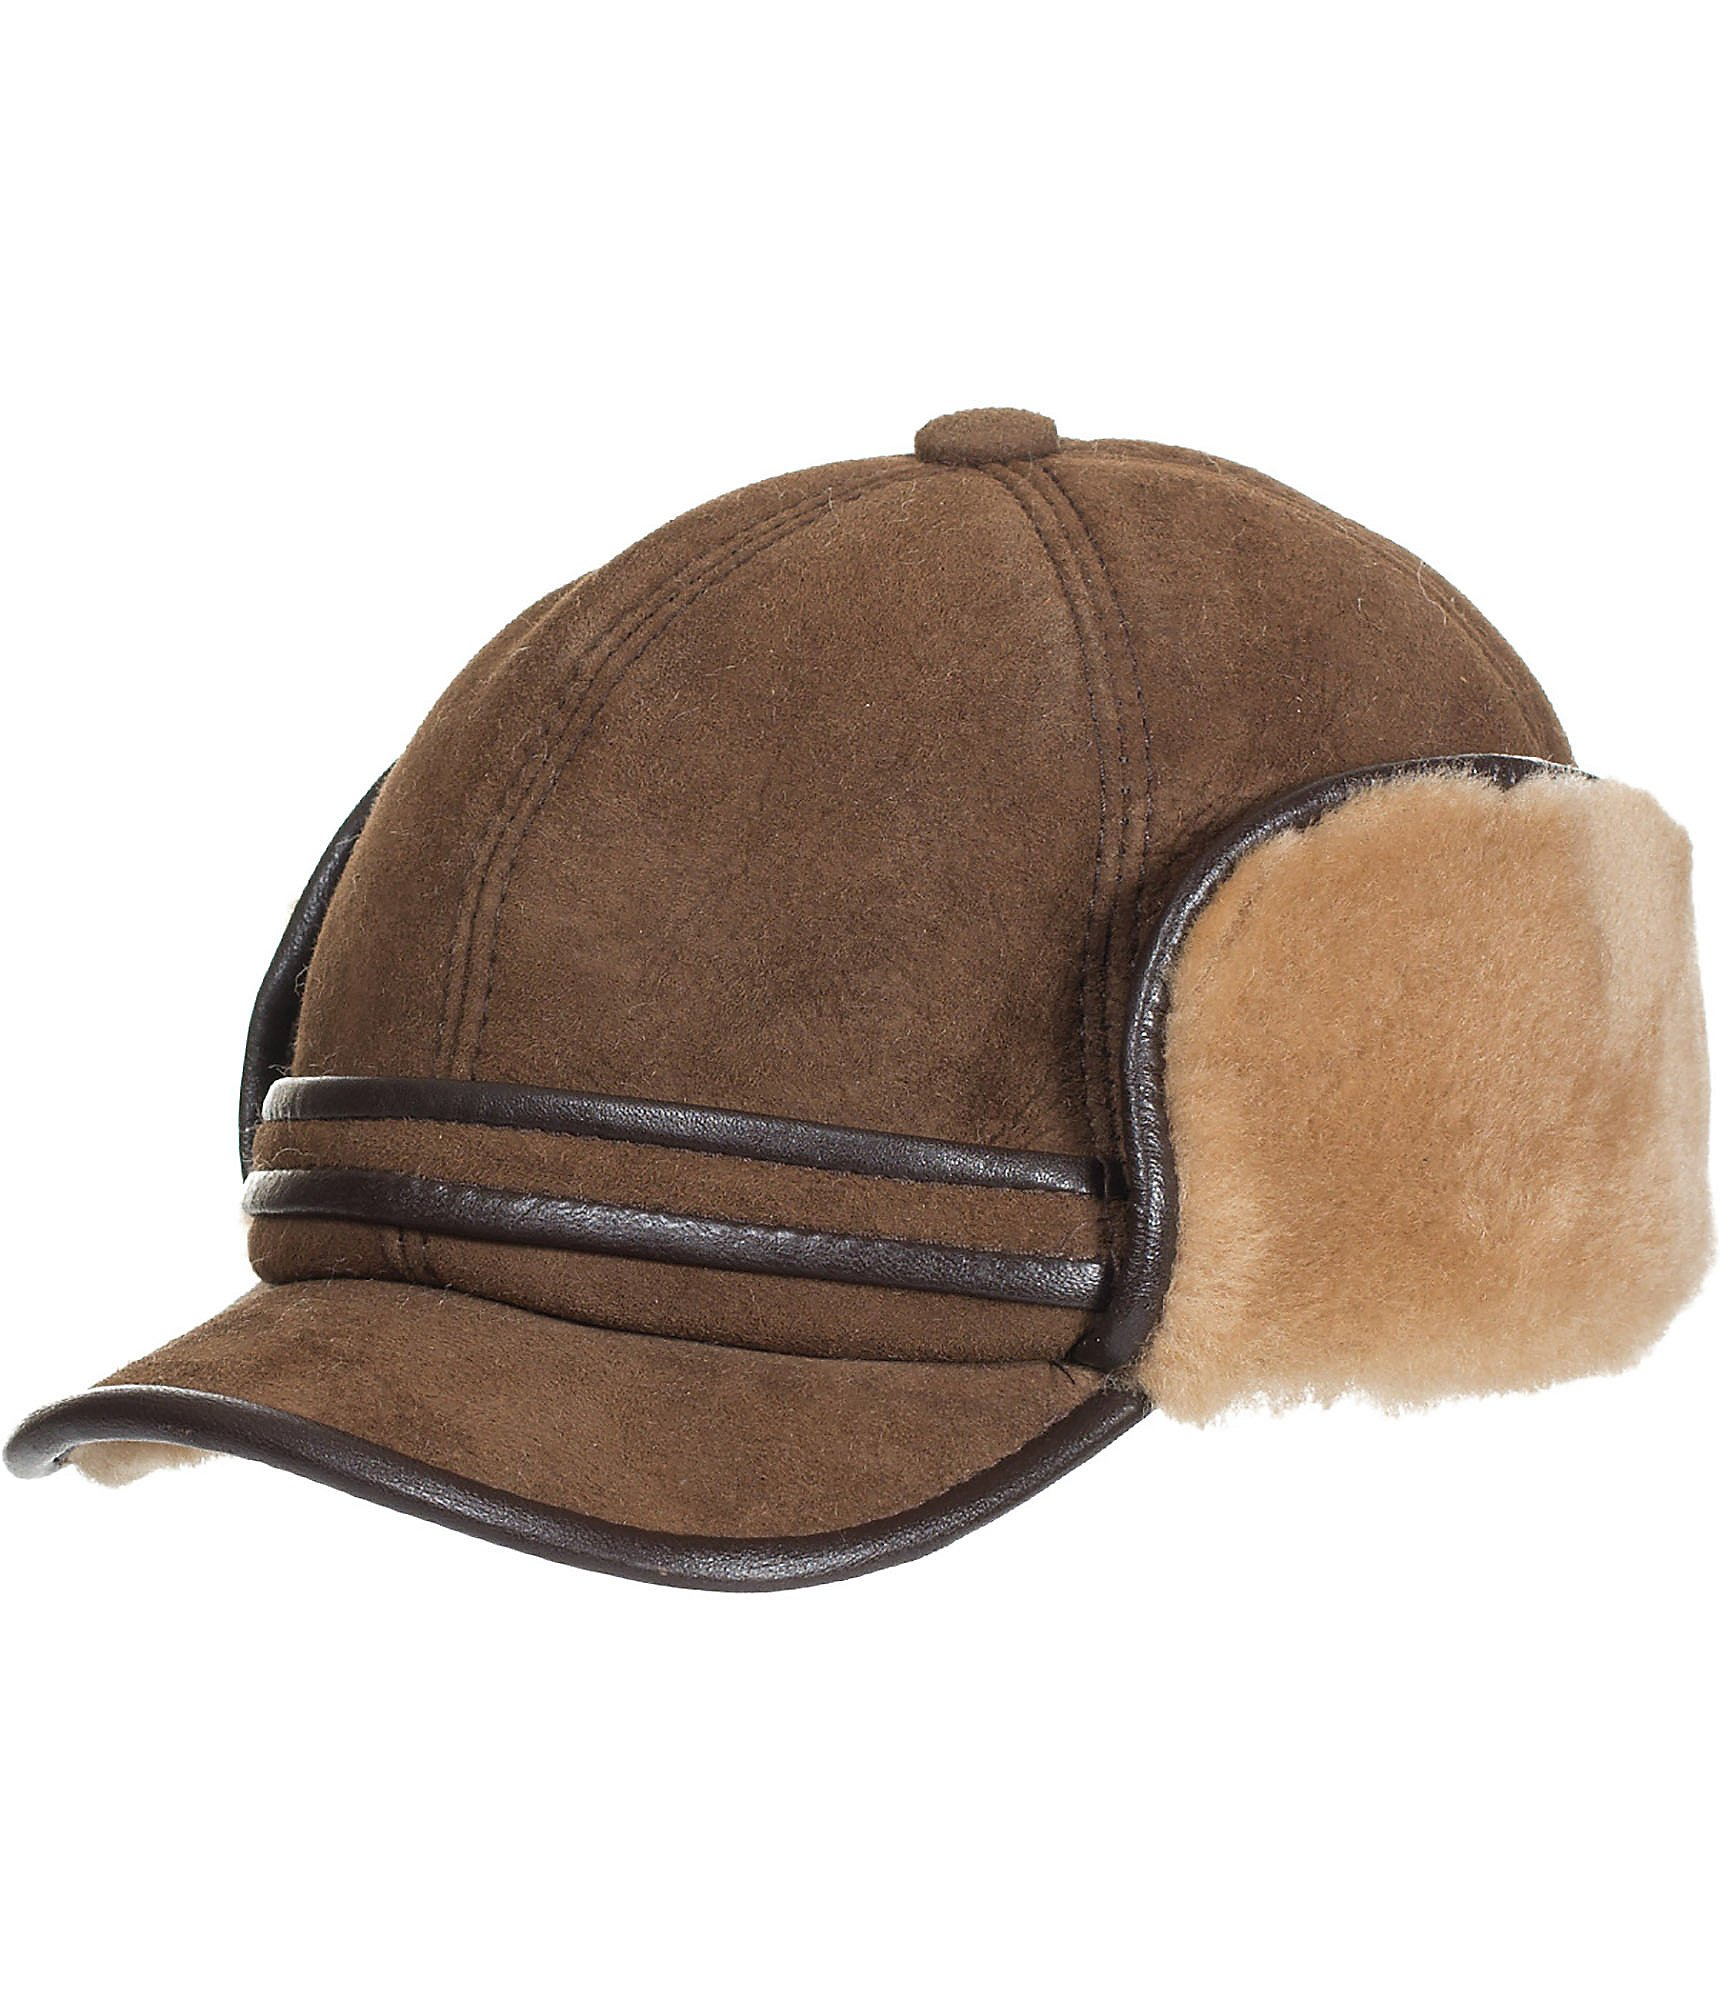 Shearling Sheepskin Cadet Cap with Snap Flaps, SUEDE CASTANO, Size Large (7 1/4–7 3/8)